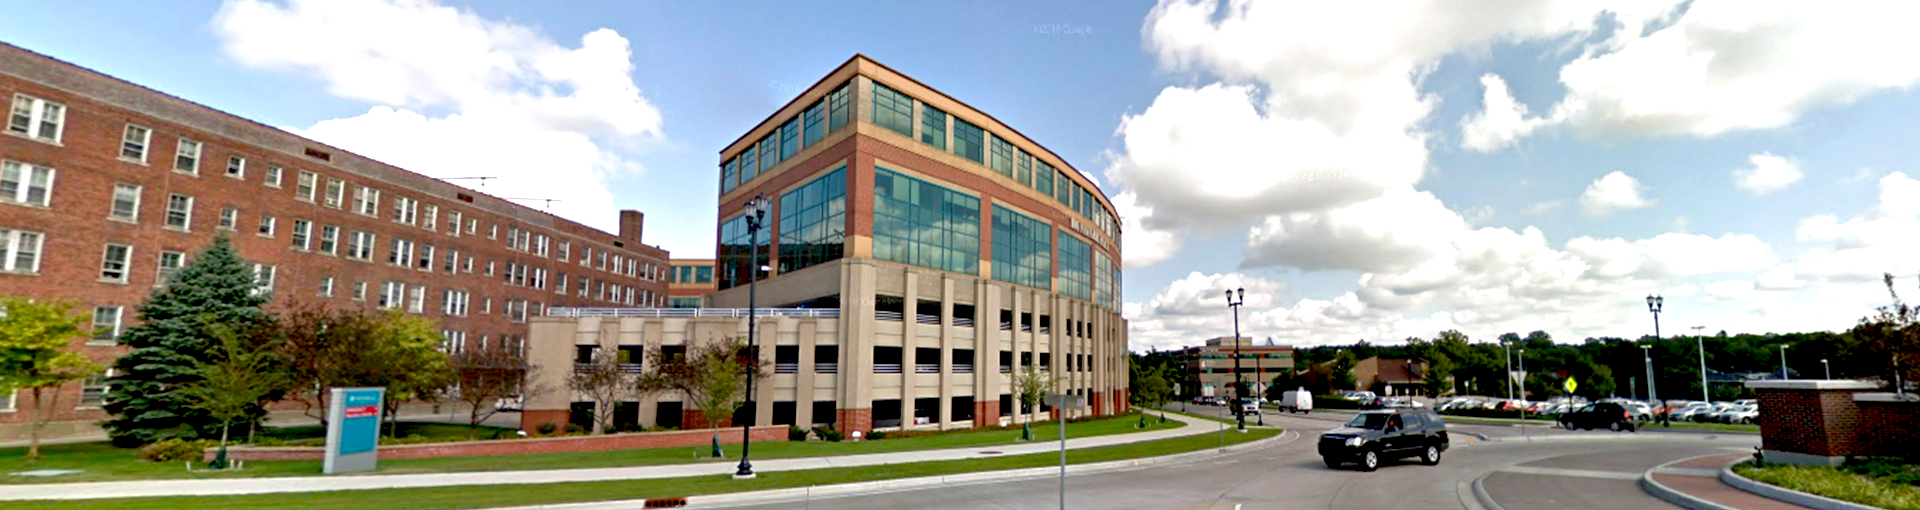 Beacon Medical Group North Central Neurosurgery South Bend - Beacon